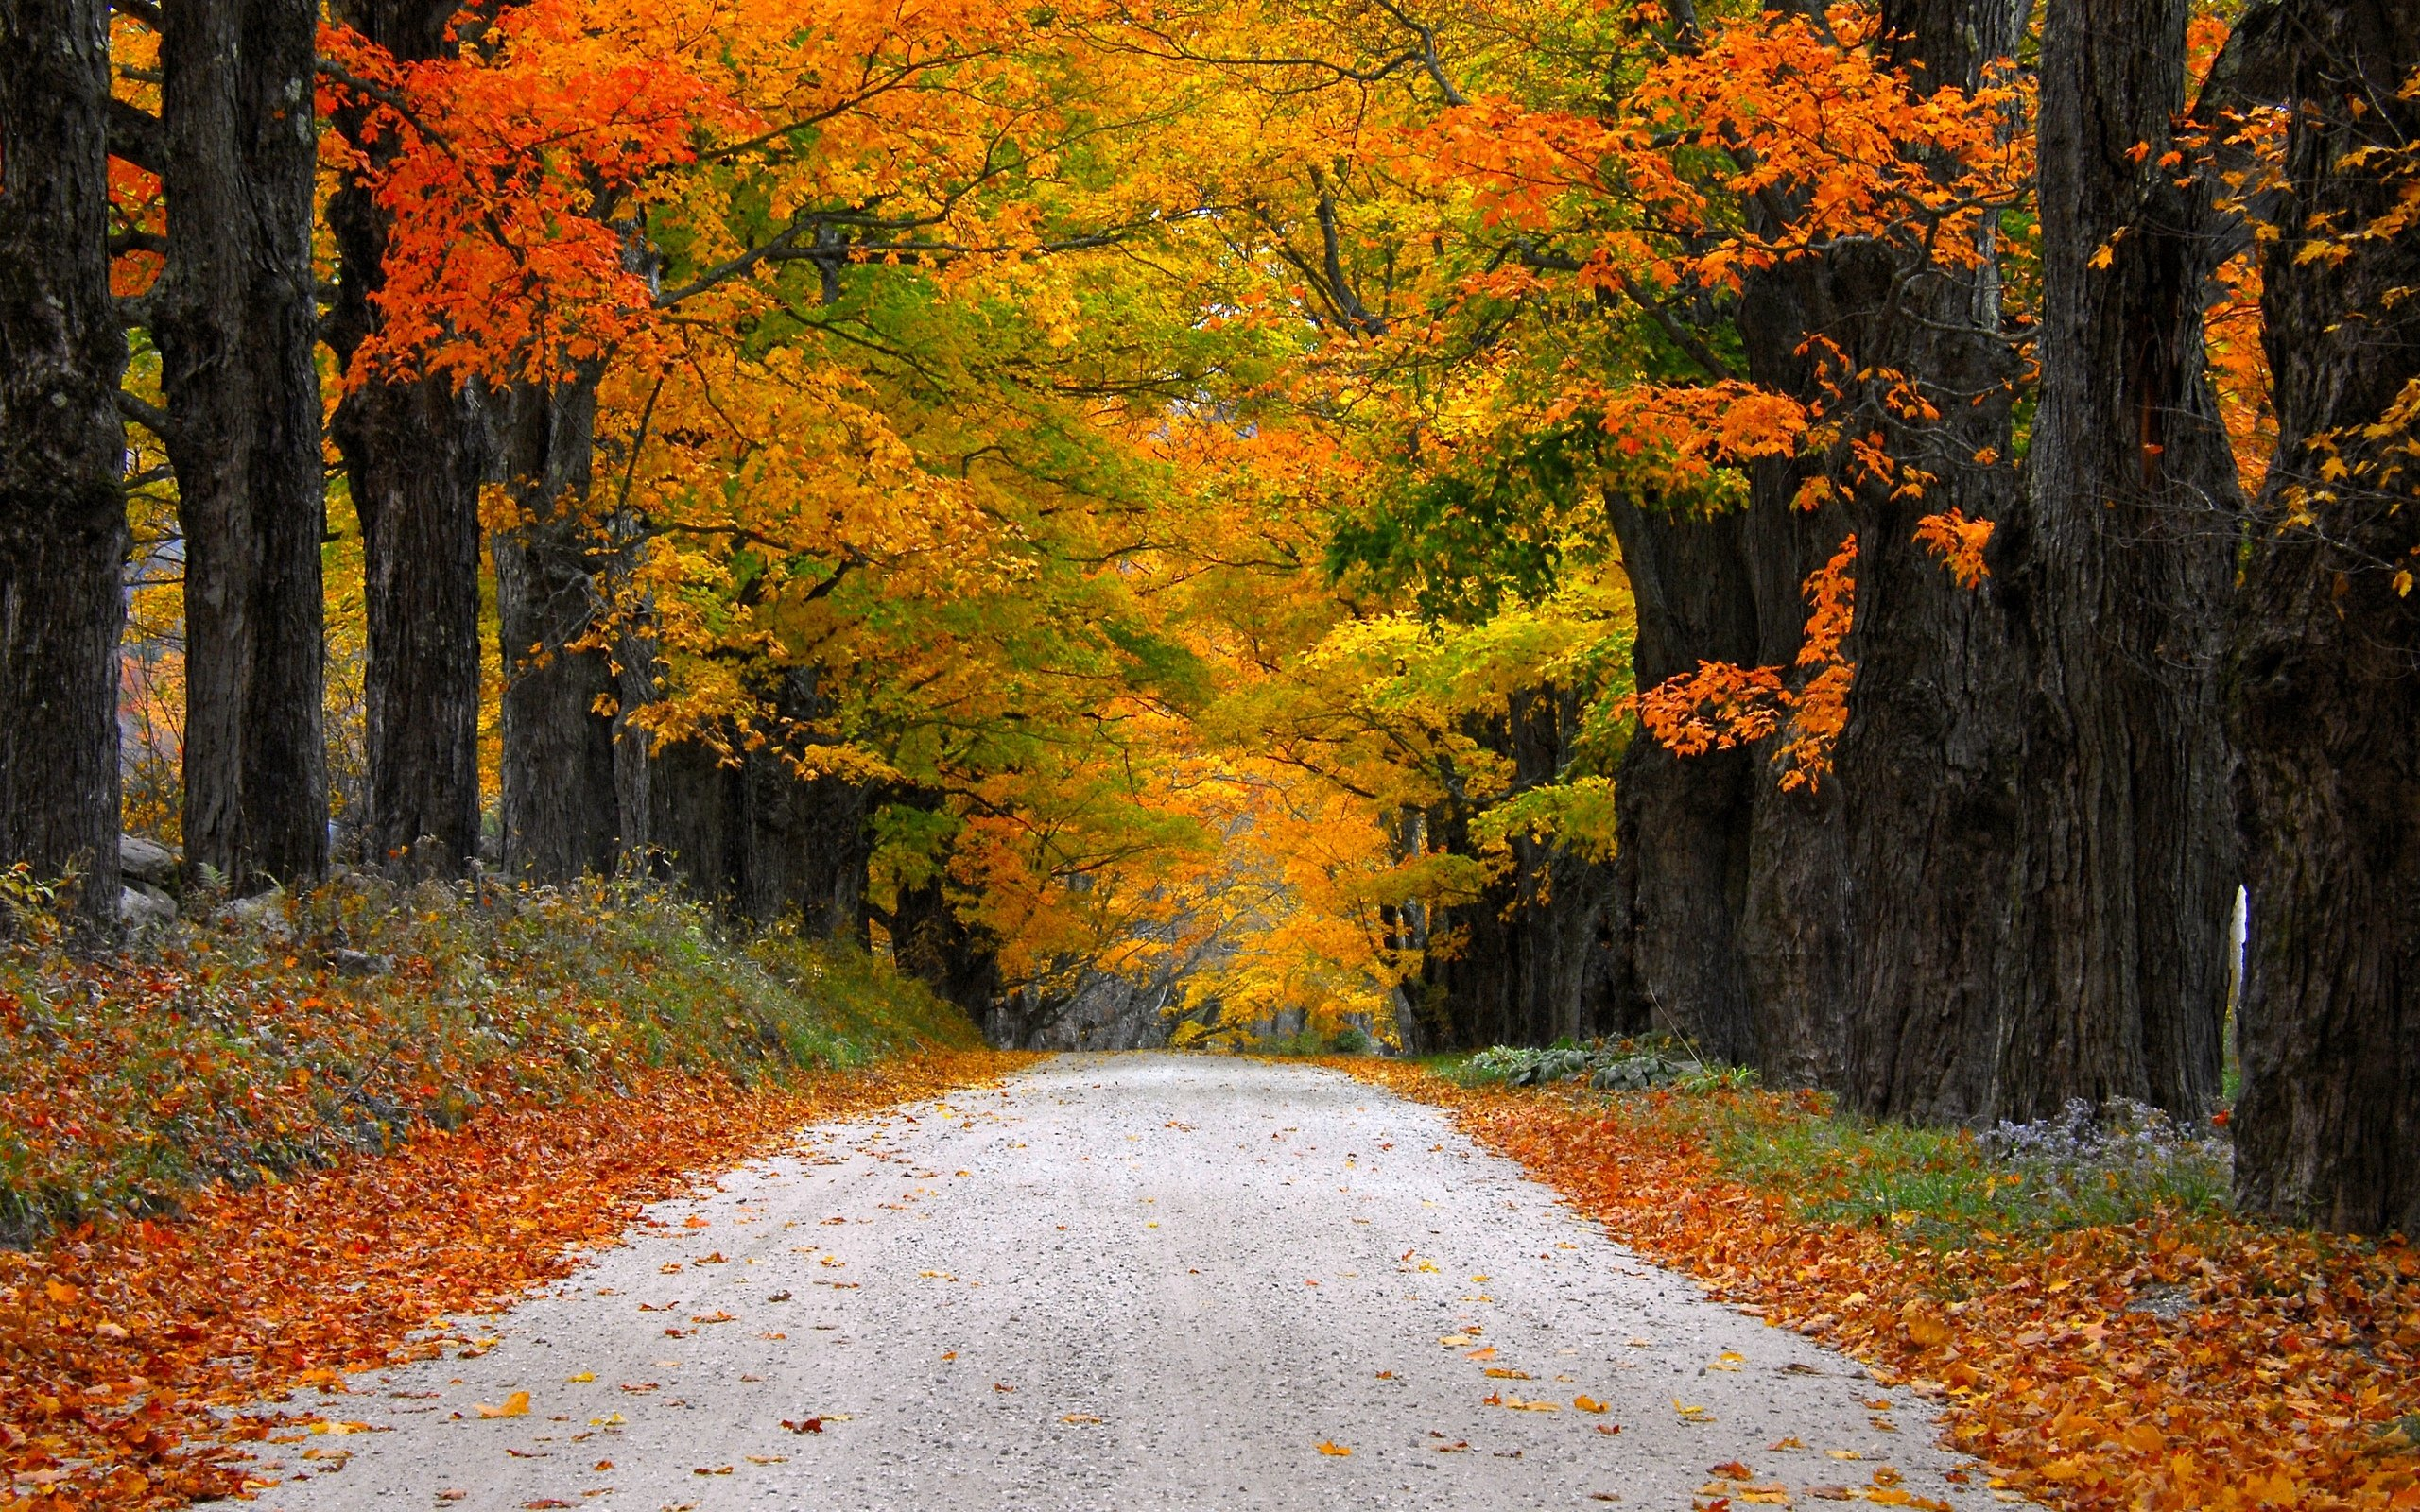 Fall Leaves Pathway Computer Wallpaper Autumn Nature Path Leaves Mountain Fall Colorful Trees